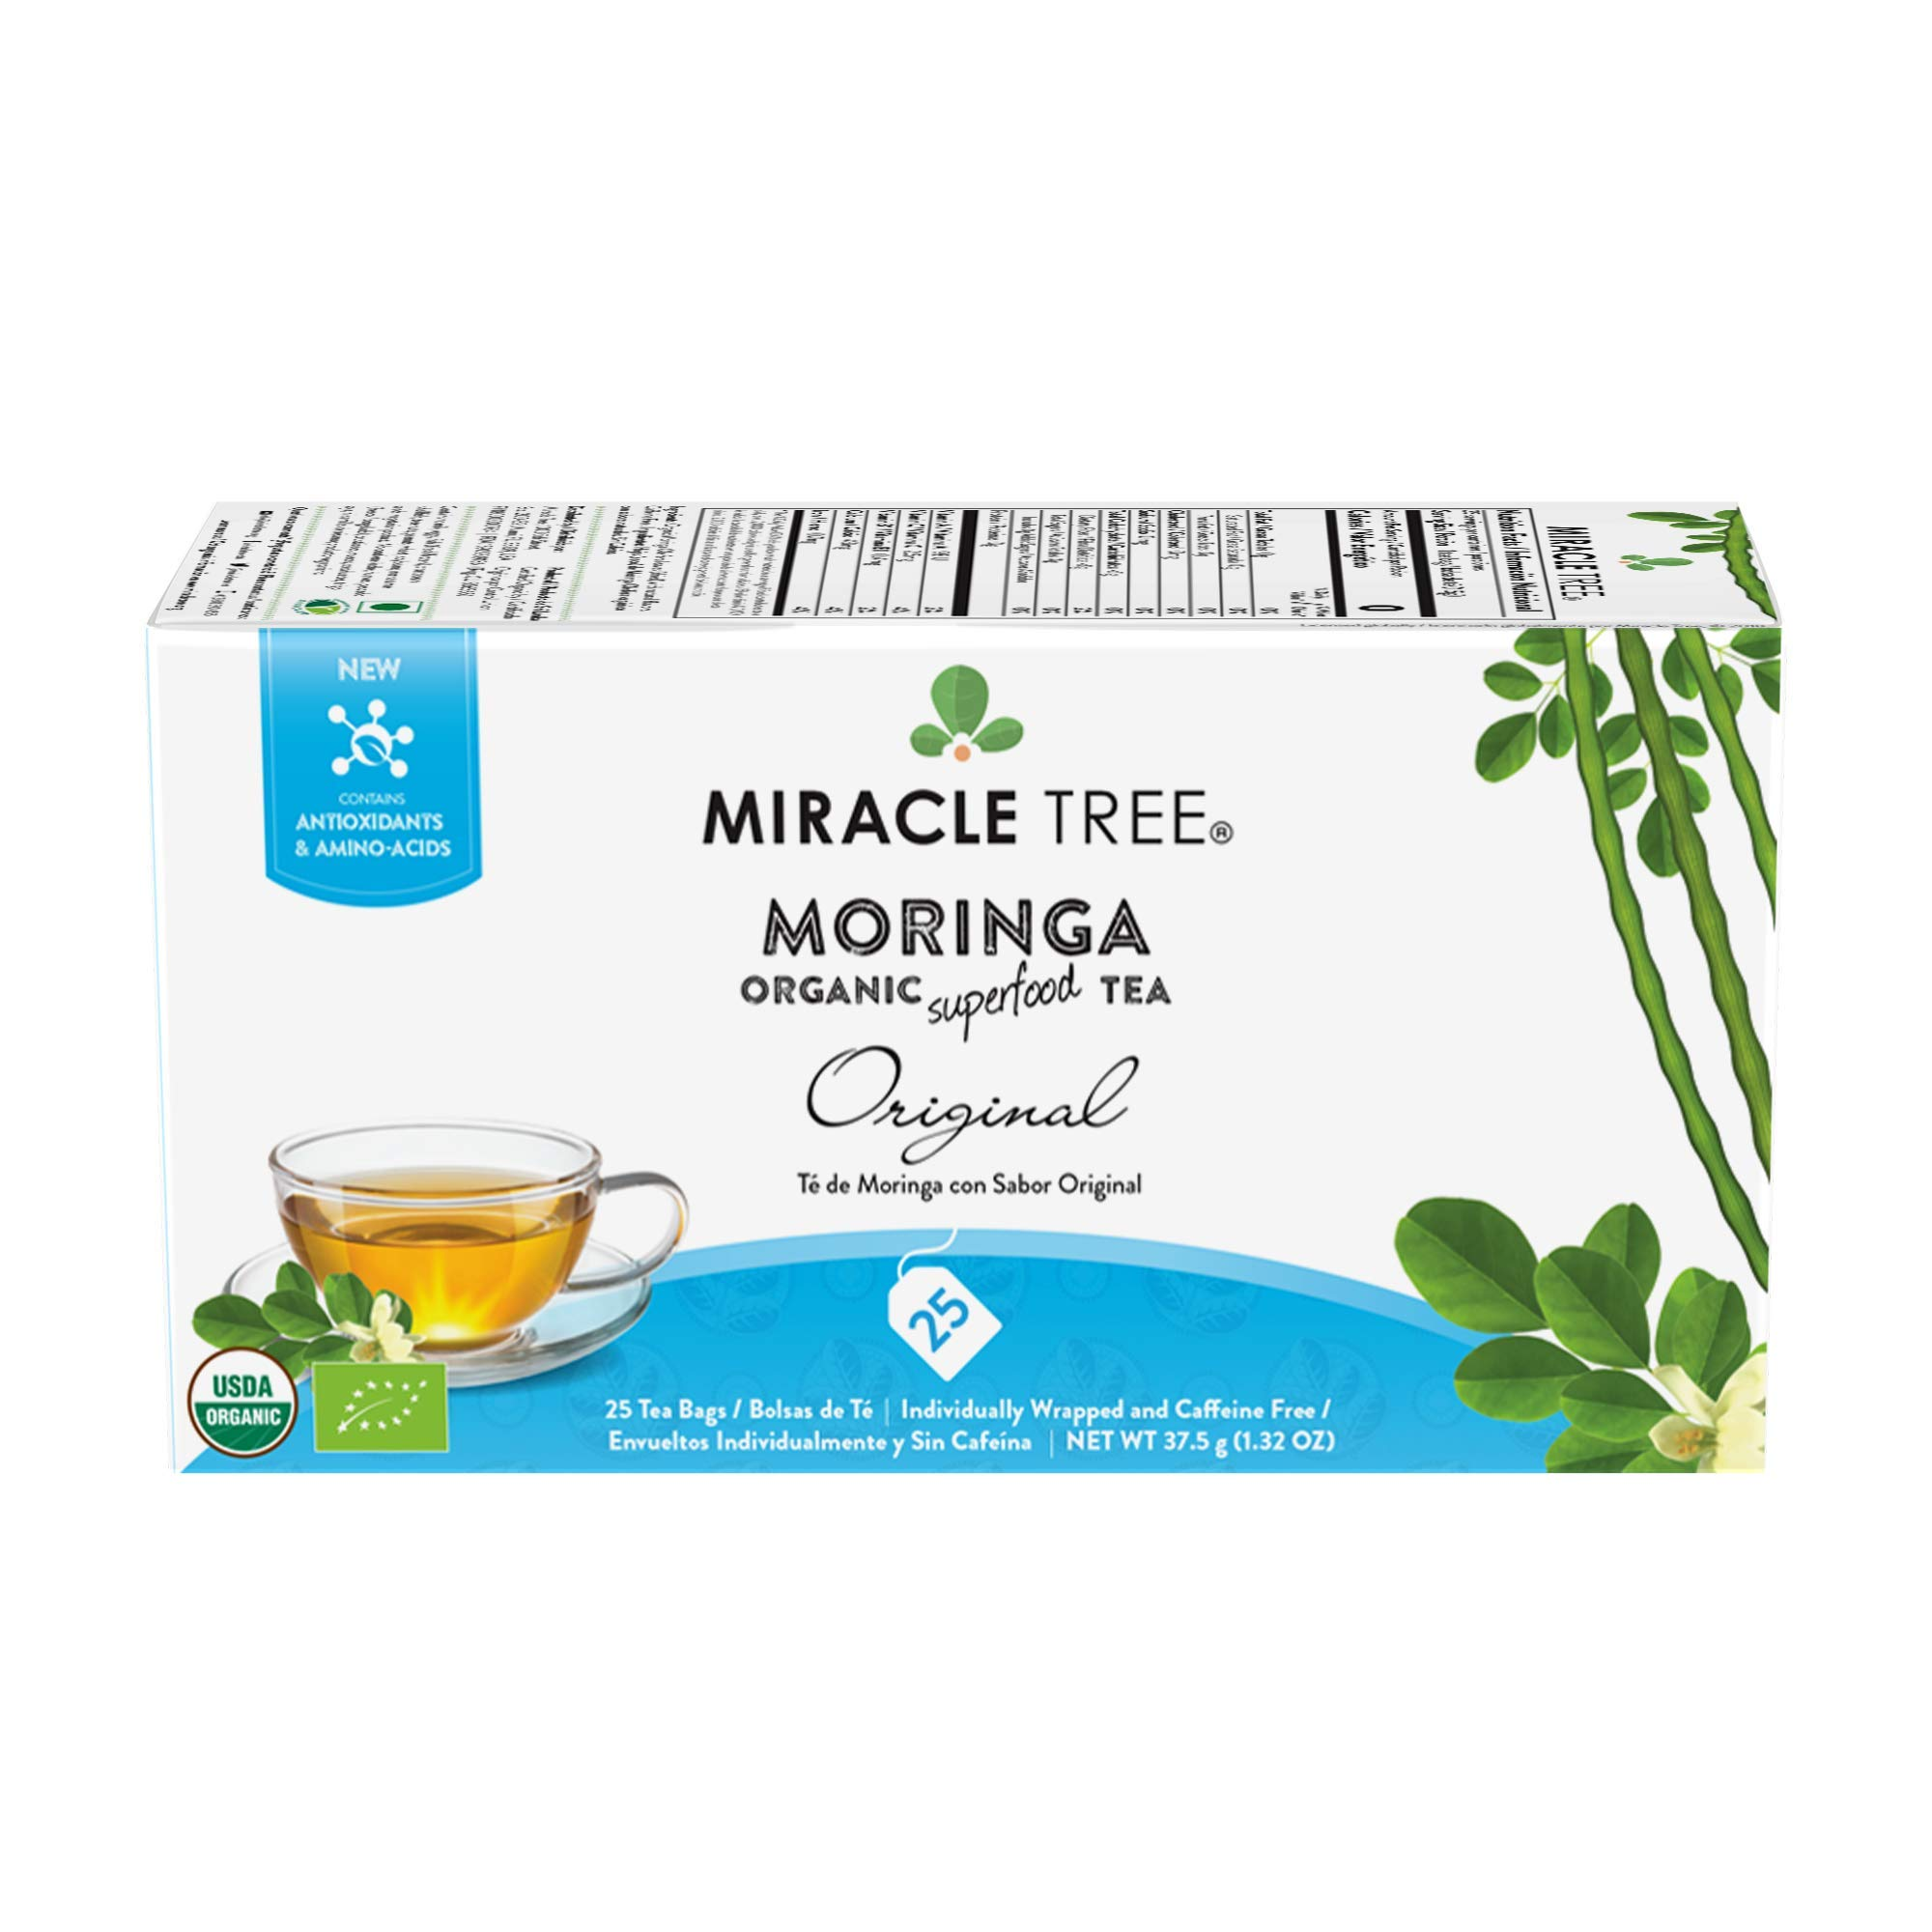 Miracle Tree - 6 Count of Organic Moringa Superfood Tea, 25 Individually Sealed Tea Bags, Original